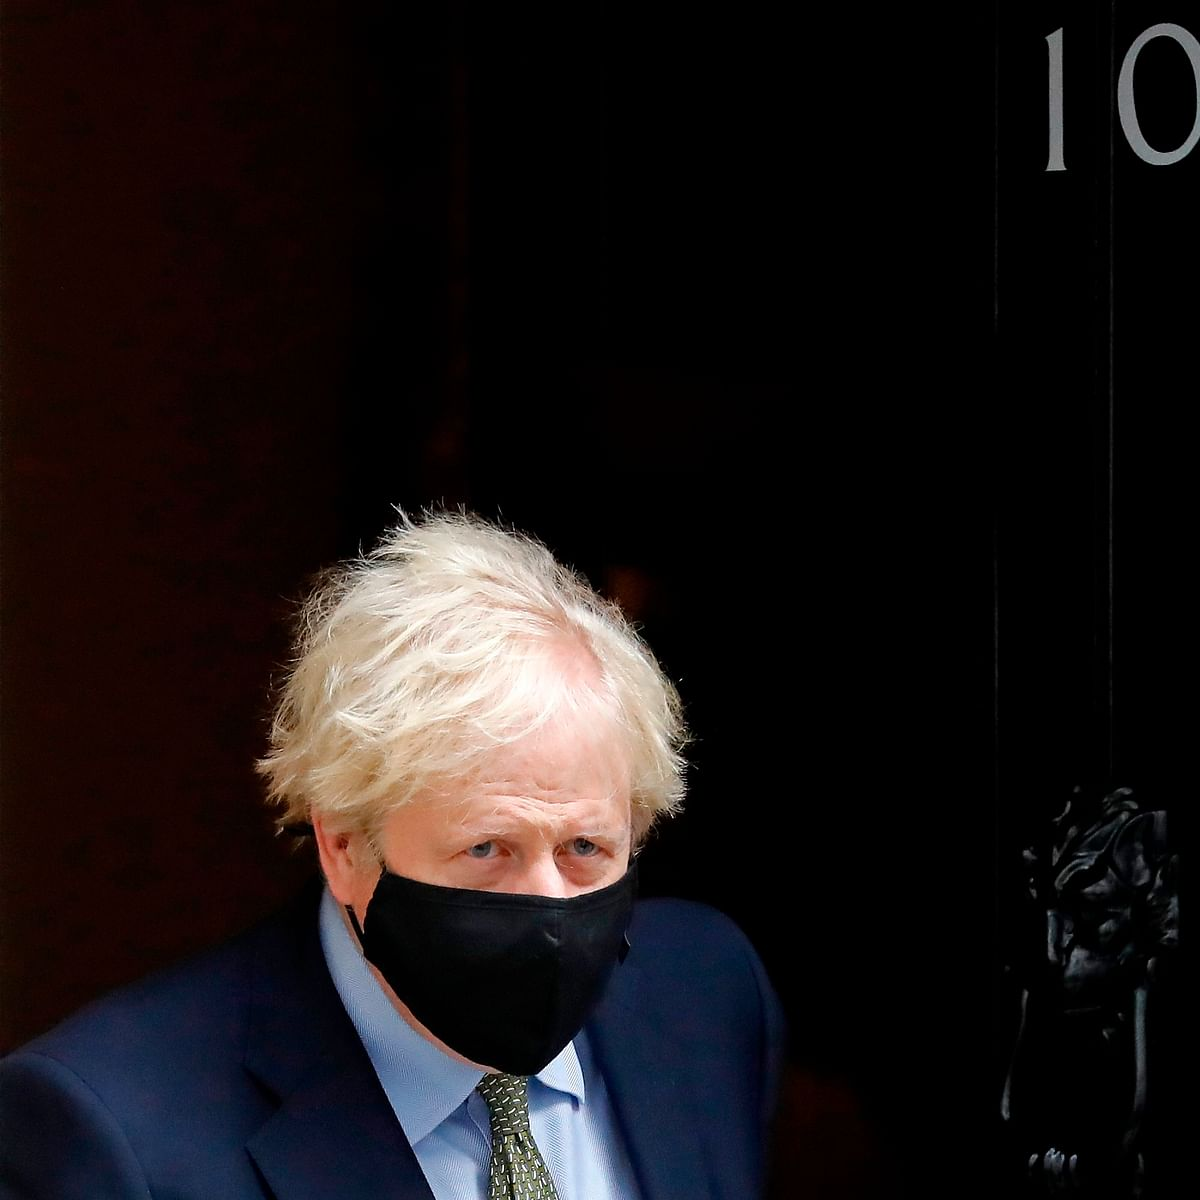 UK PM Boris Johnson says sports stadiums and events to have no capacity cap from July 19